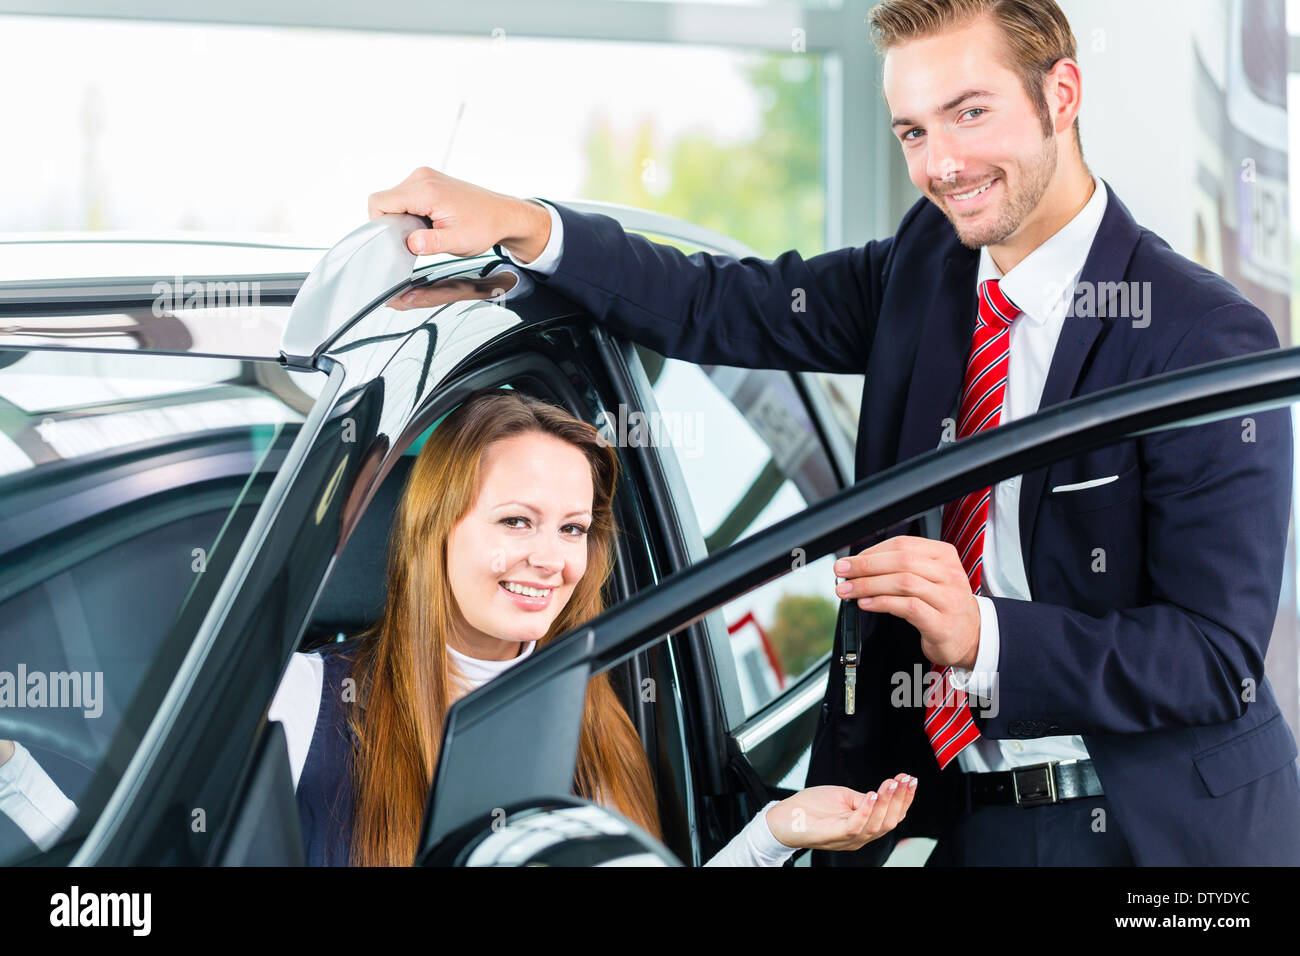 Seller or car salesman and female client or customer in car dealership presenting the interior decoration of new and used cars - Stock Image